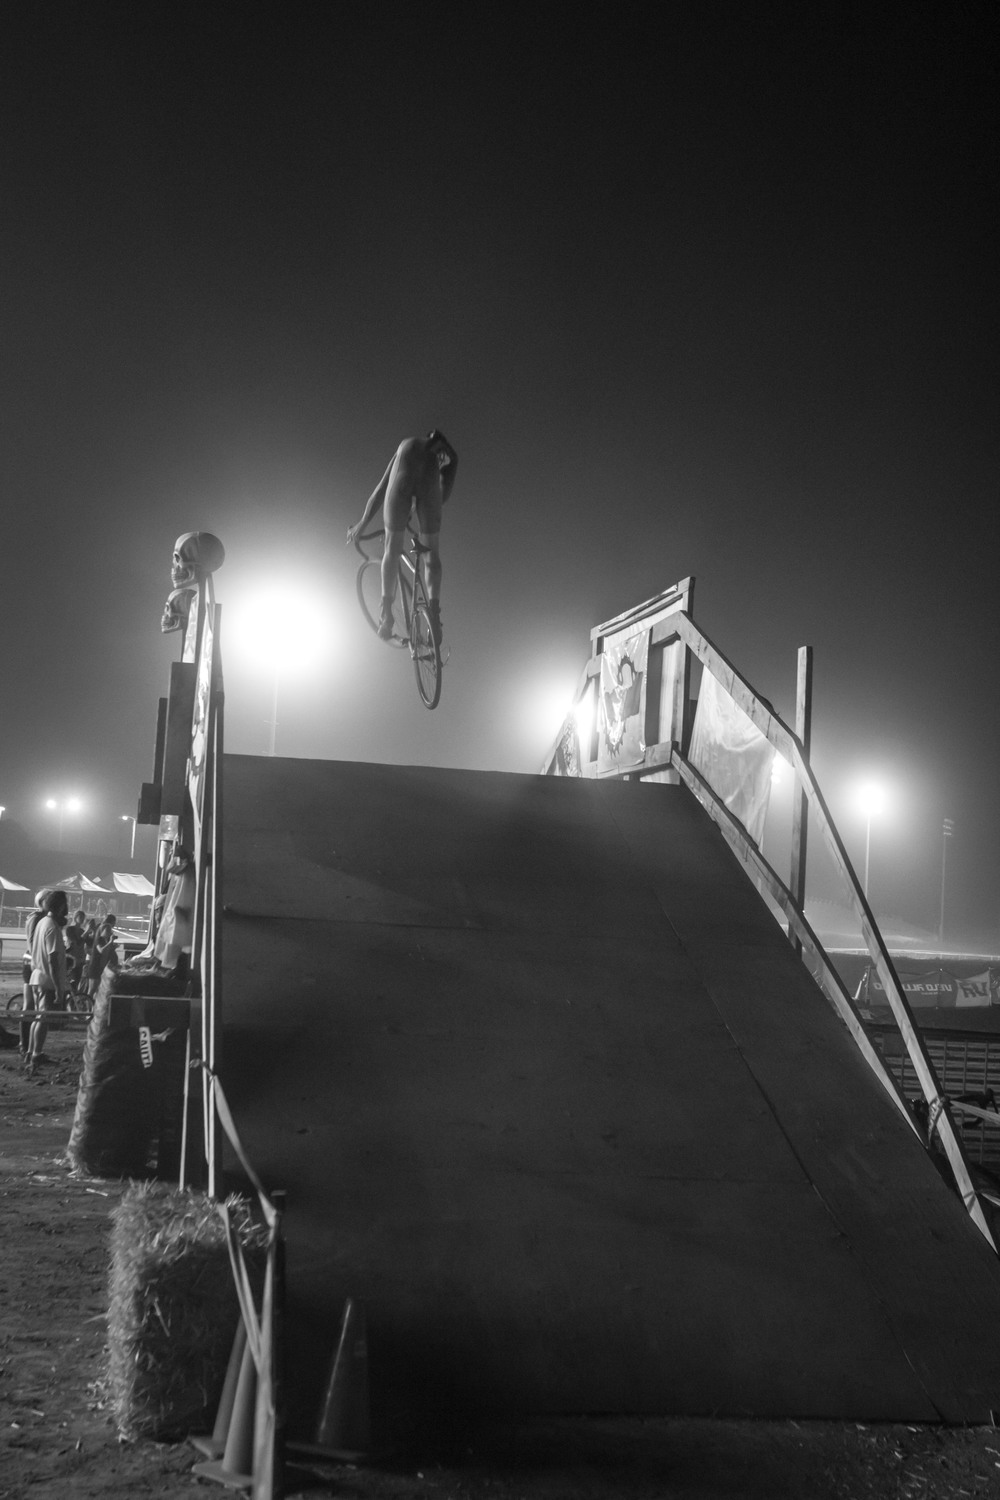 3. Catching air at Spooky Kross in the middle of a horse racetrack at Pomona Fairplex.